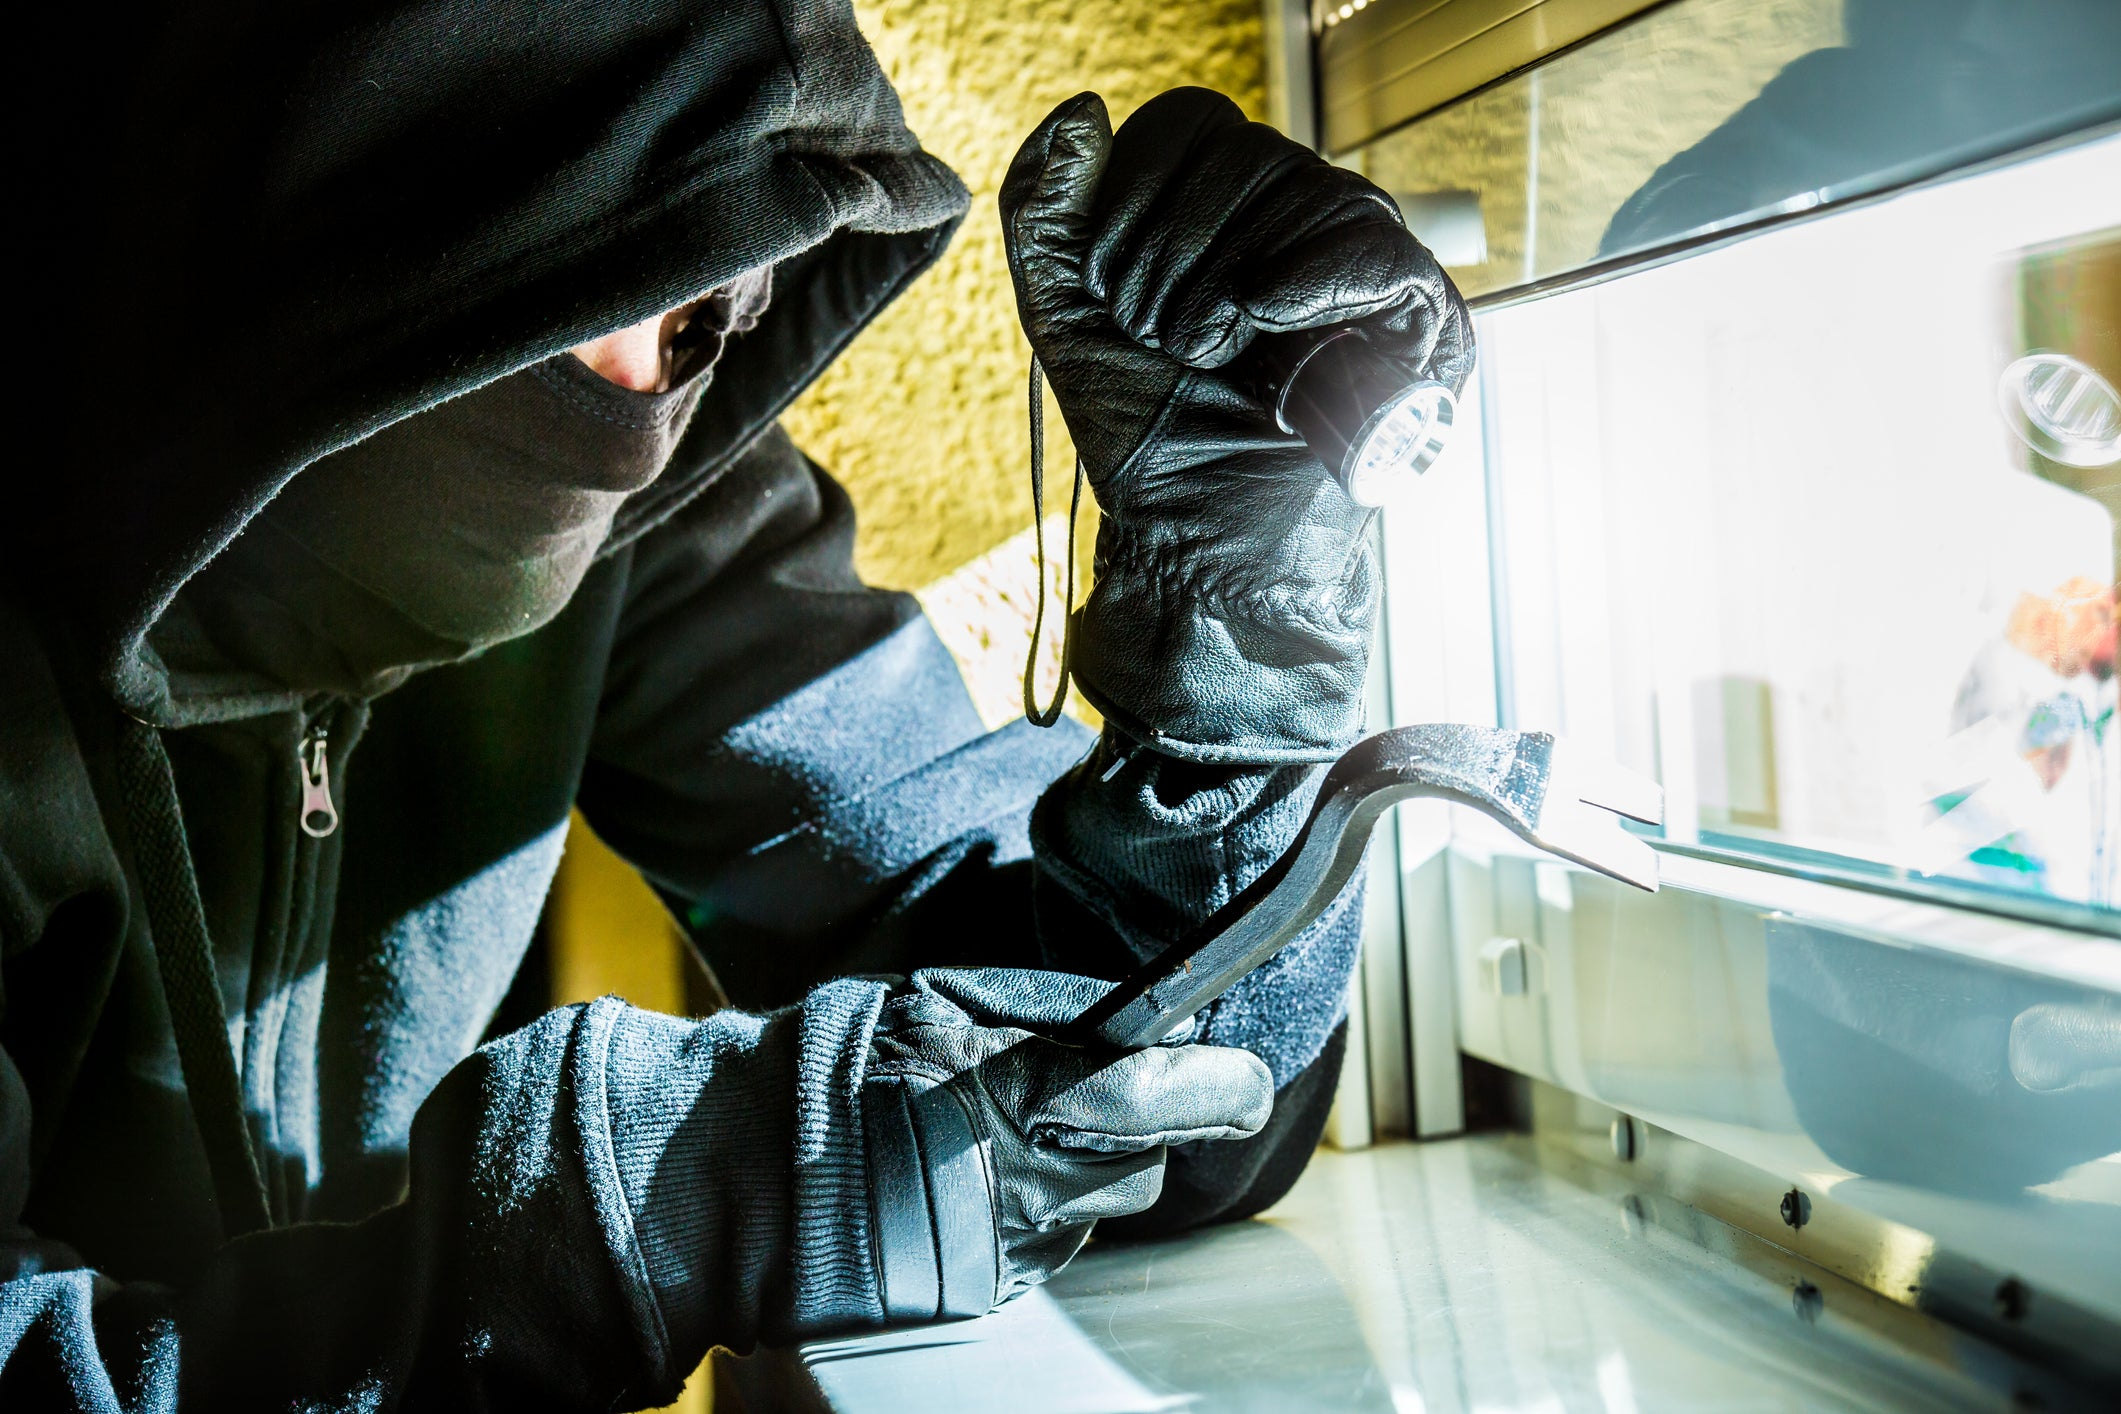 What to Do If Your Home Is Burglarized While You're Inside?